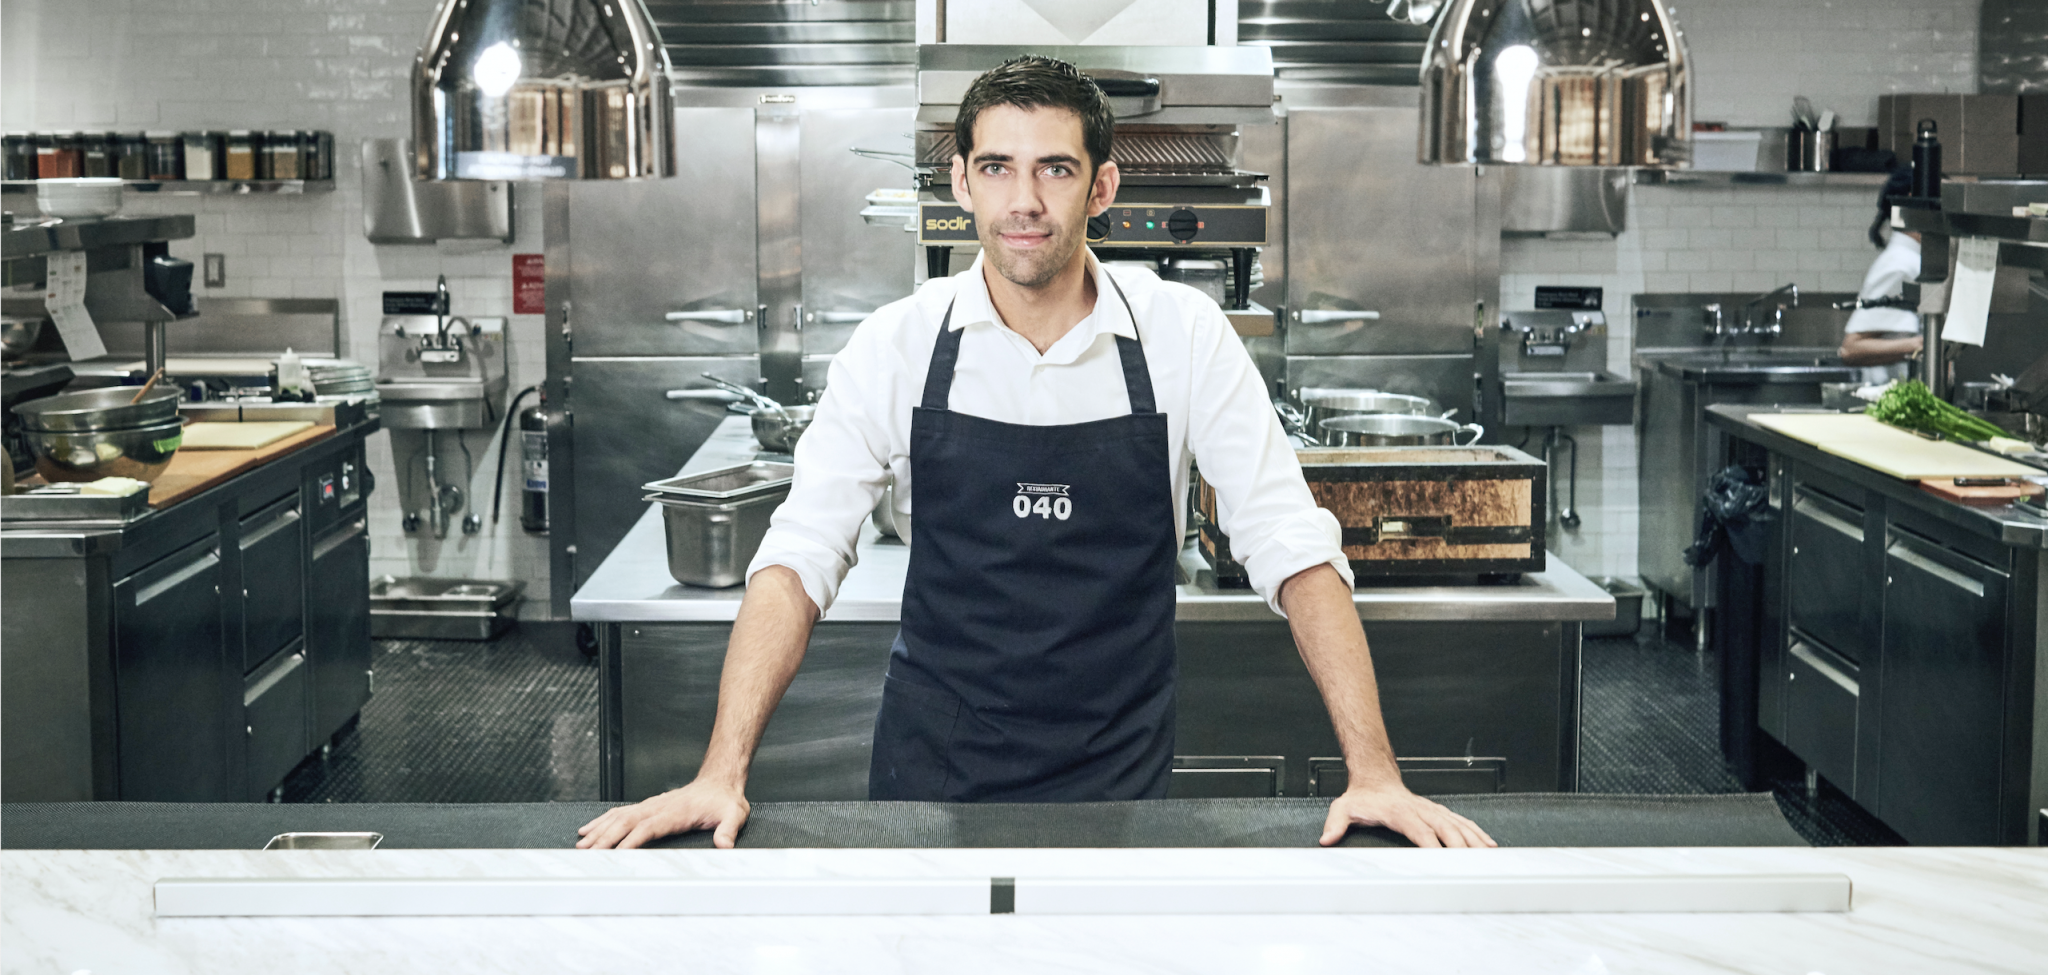 Intersect's Next Global Chef Sergio Barroso is Bringing Santiago, Chile to New York City